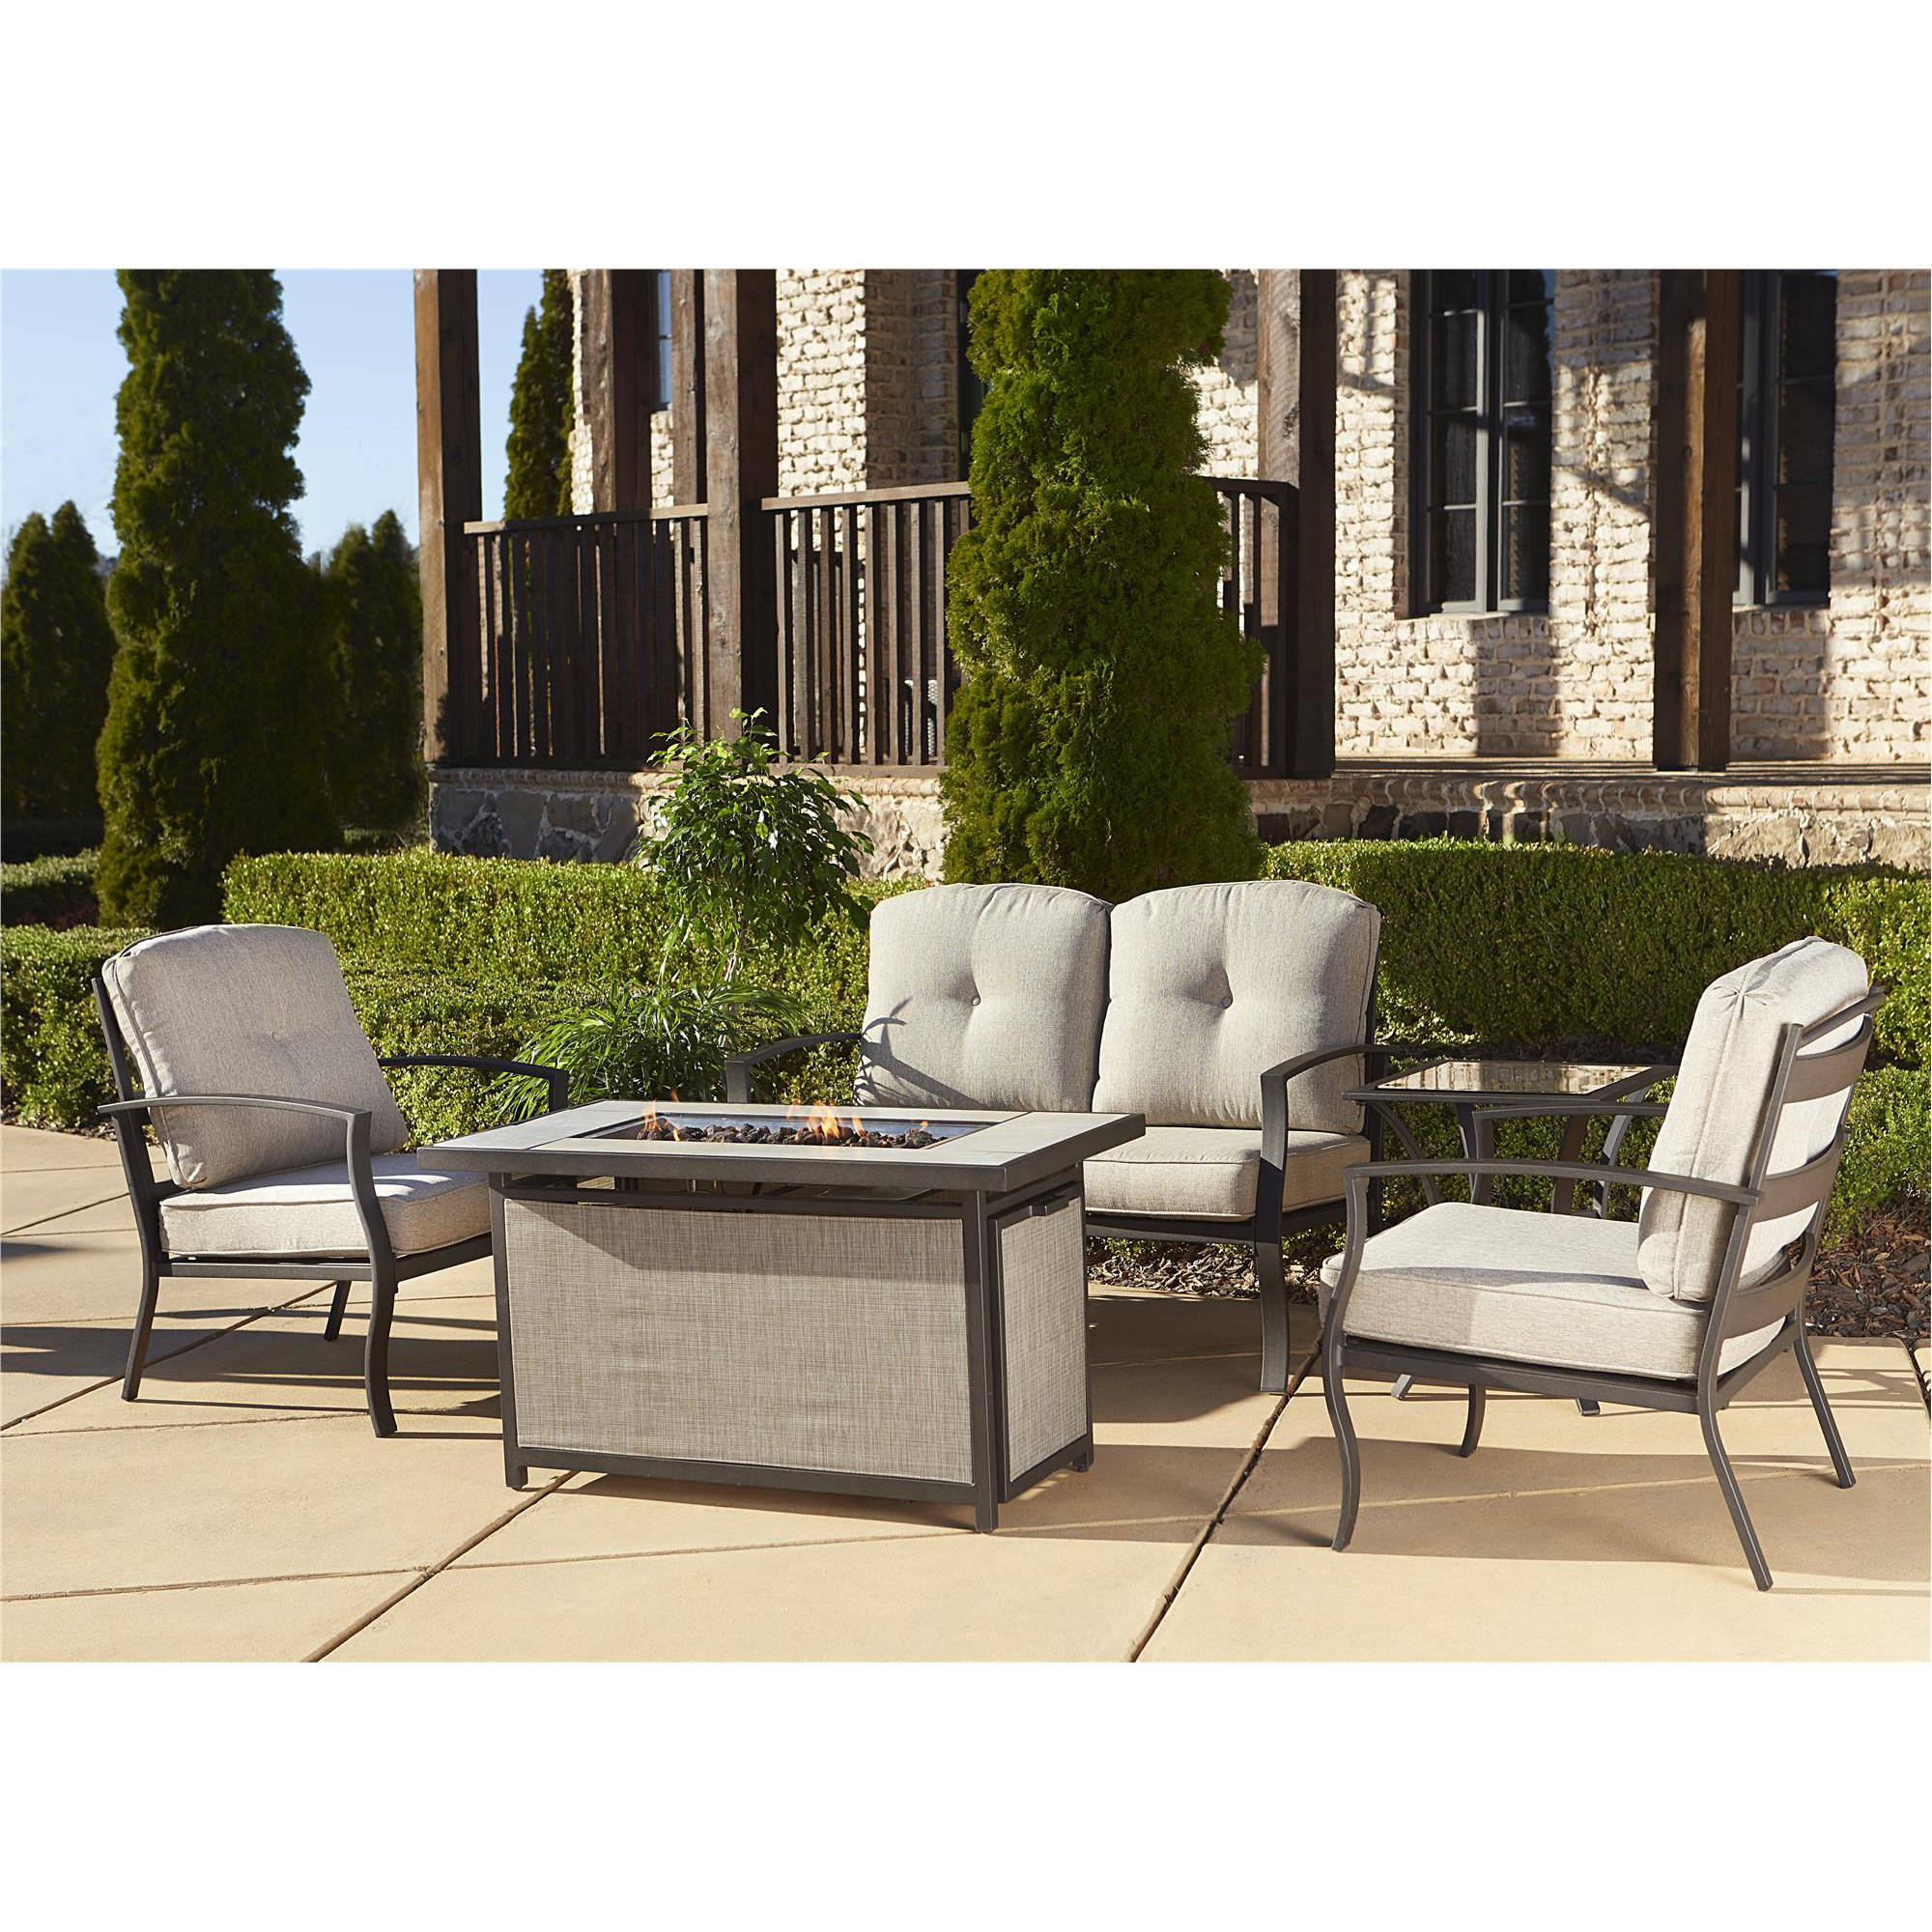 Cosco Outdoor 5 Piece Serene Ridge Aluminum Patio Furniture Conversation Set  With Cushions And Aluminum